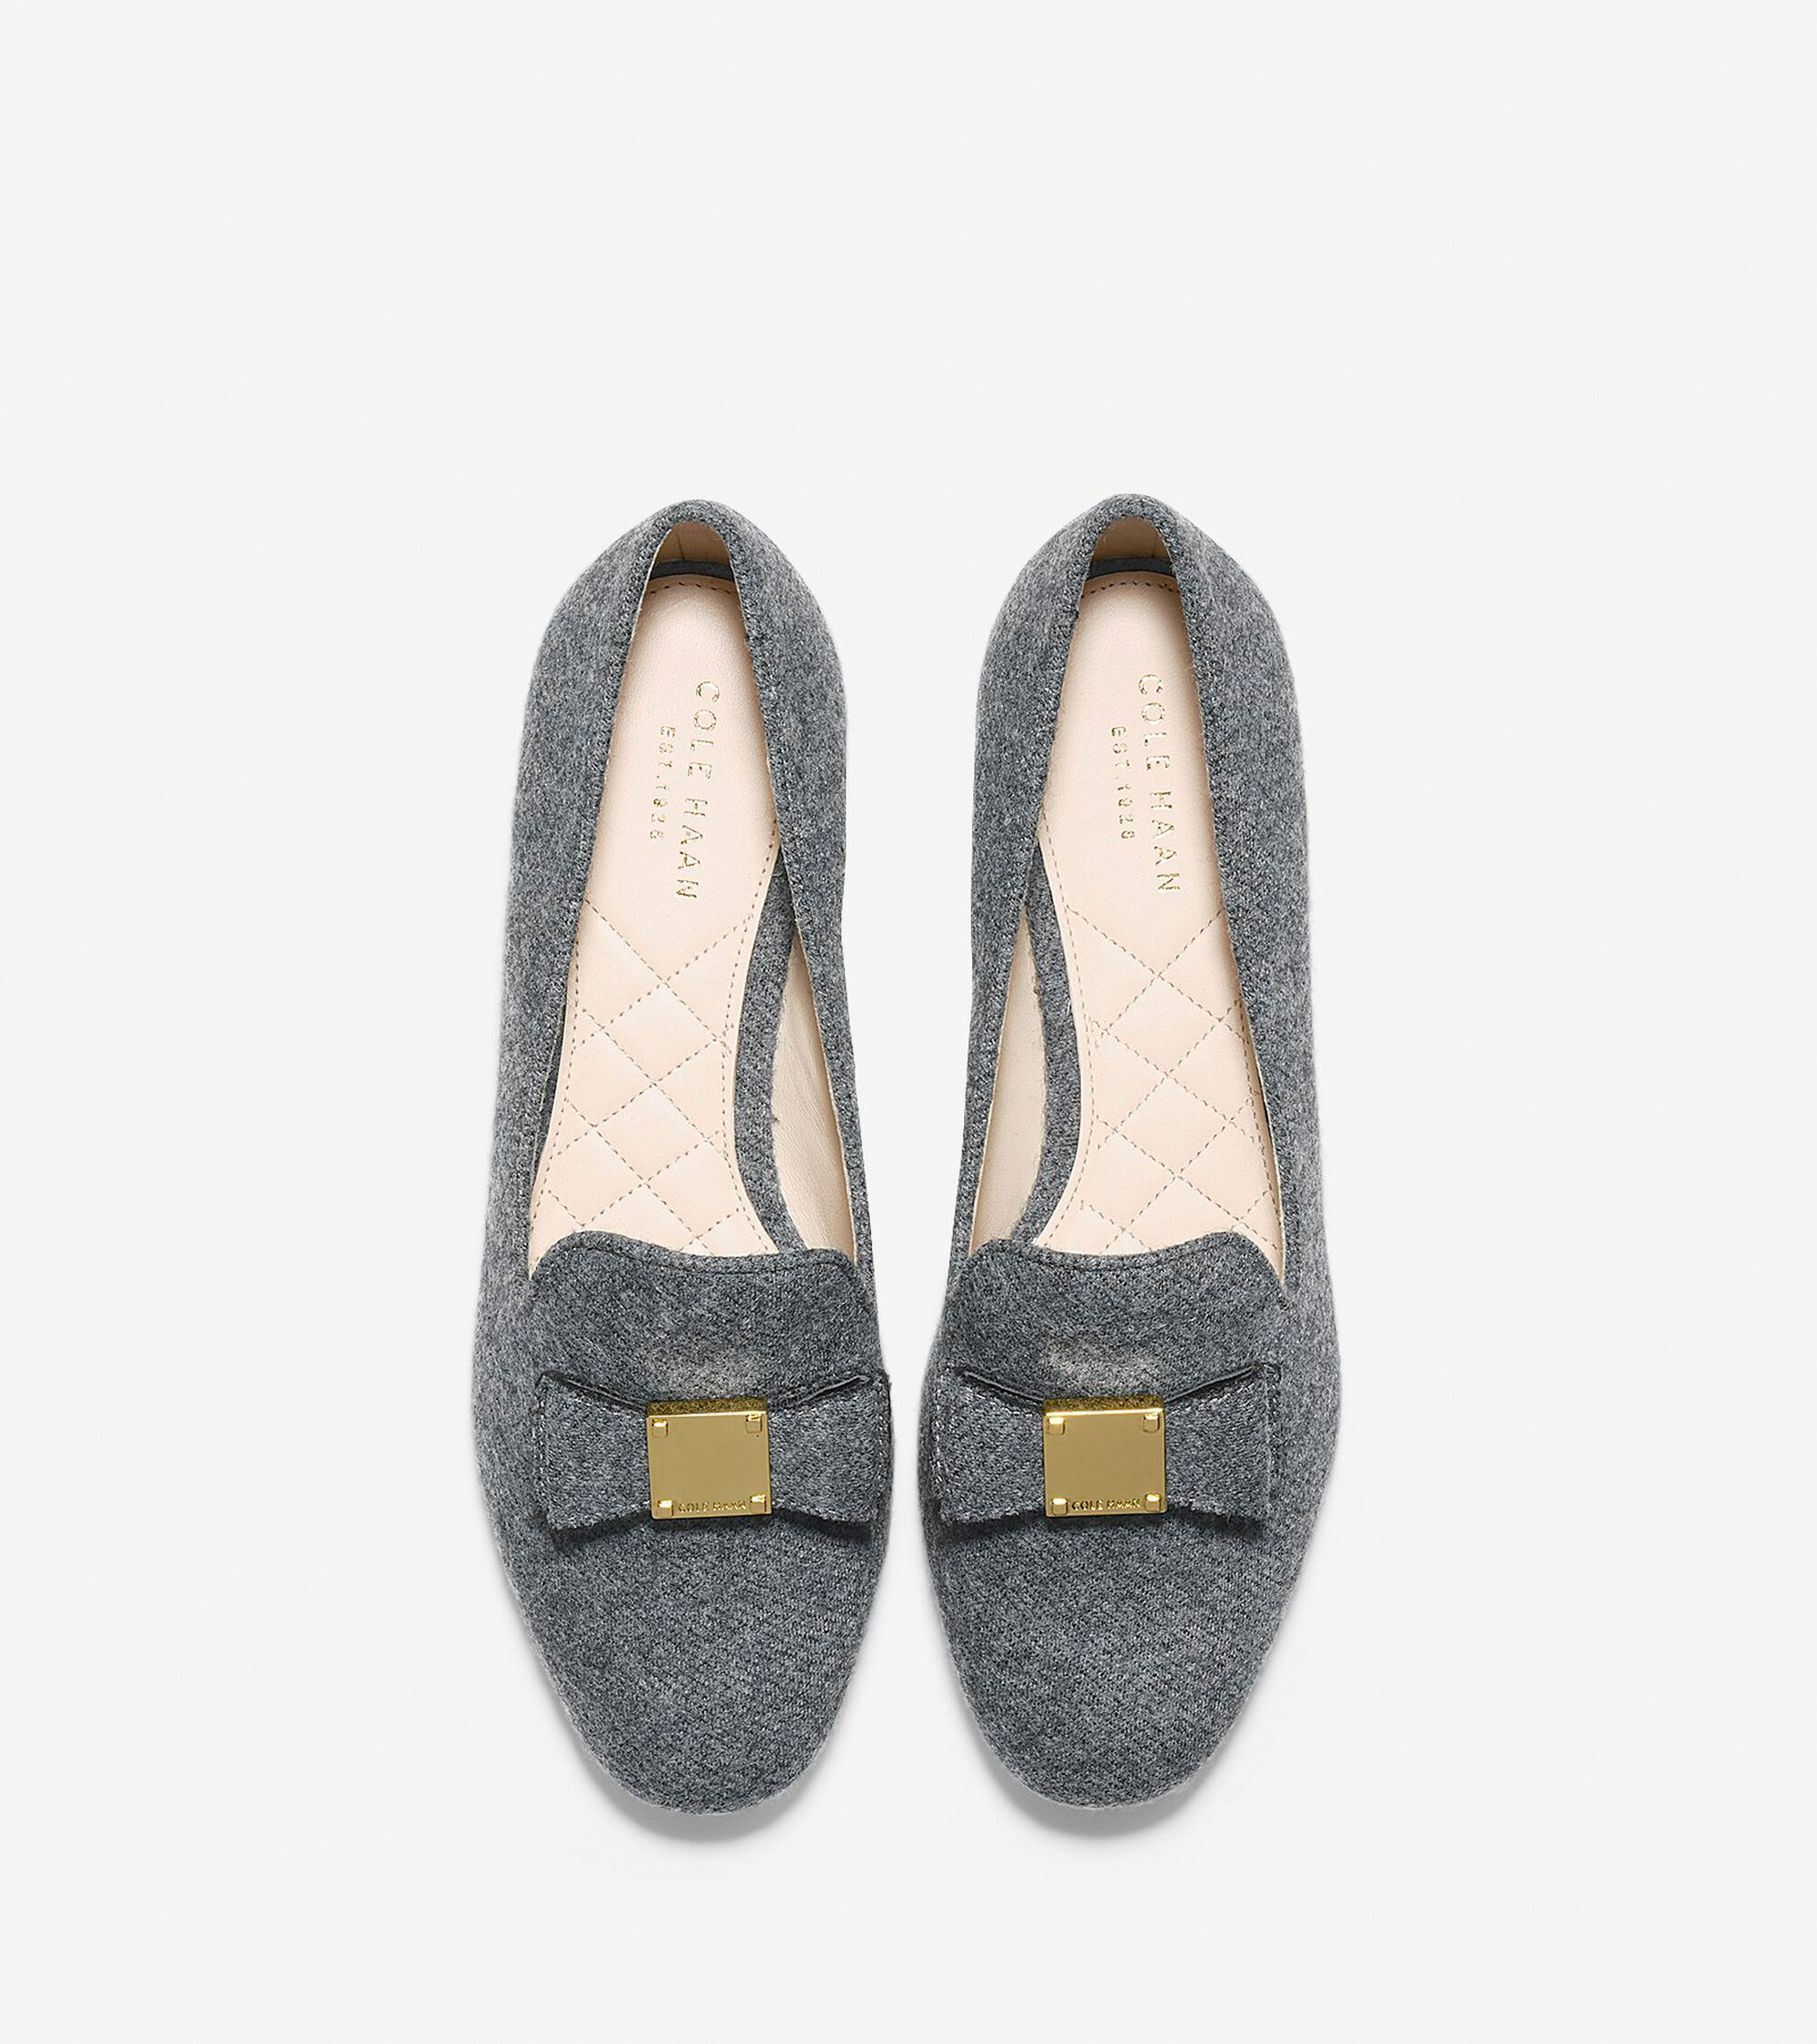 faf72983f28 Women s Tali Bow Loafers in Gray Flannel